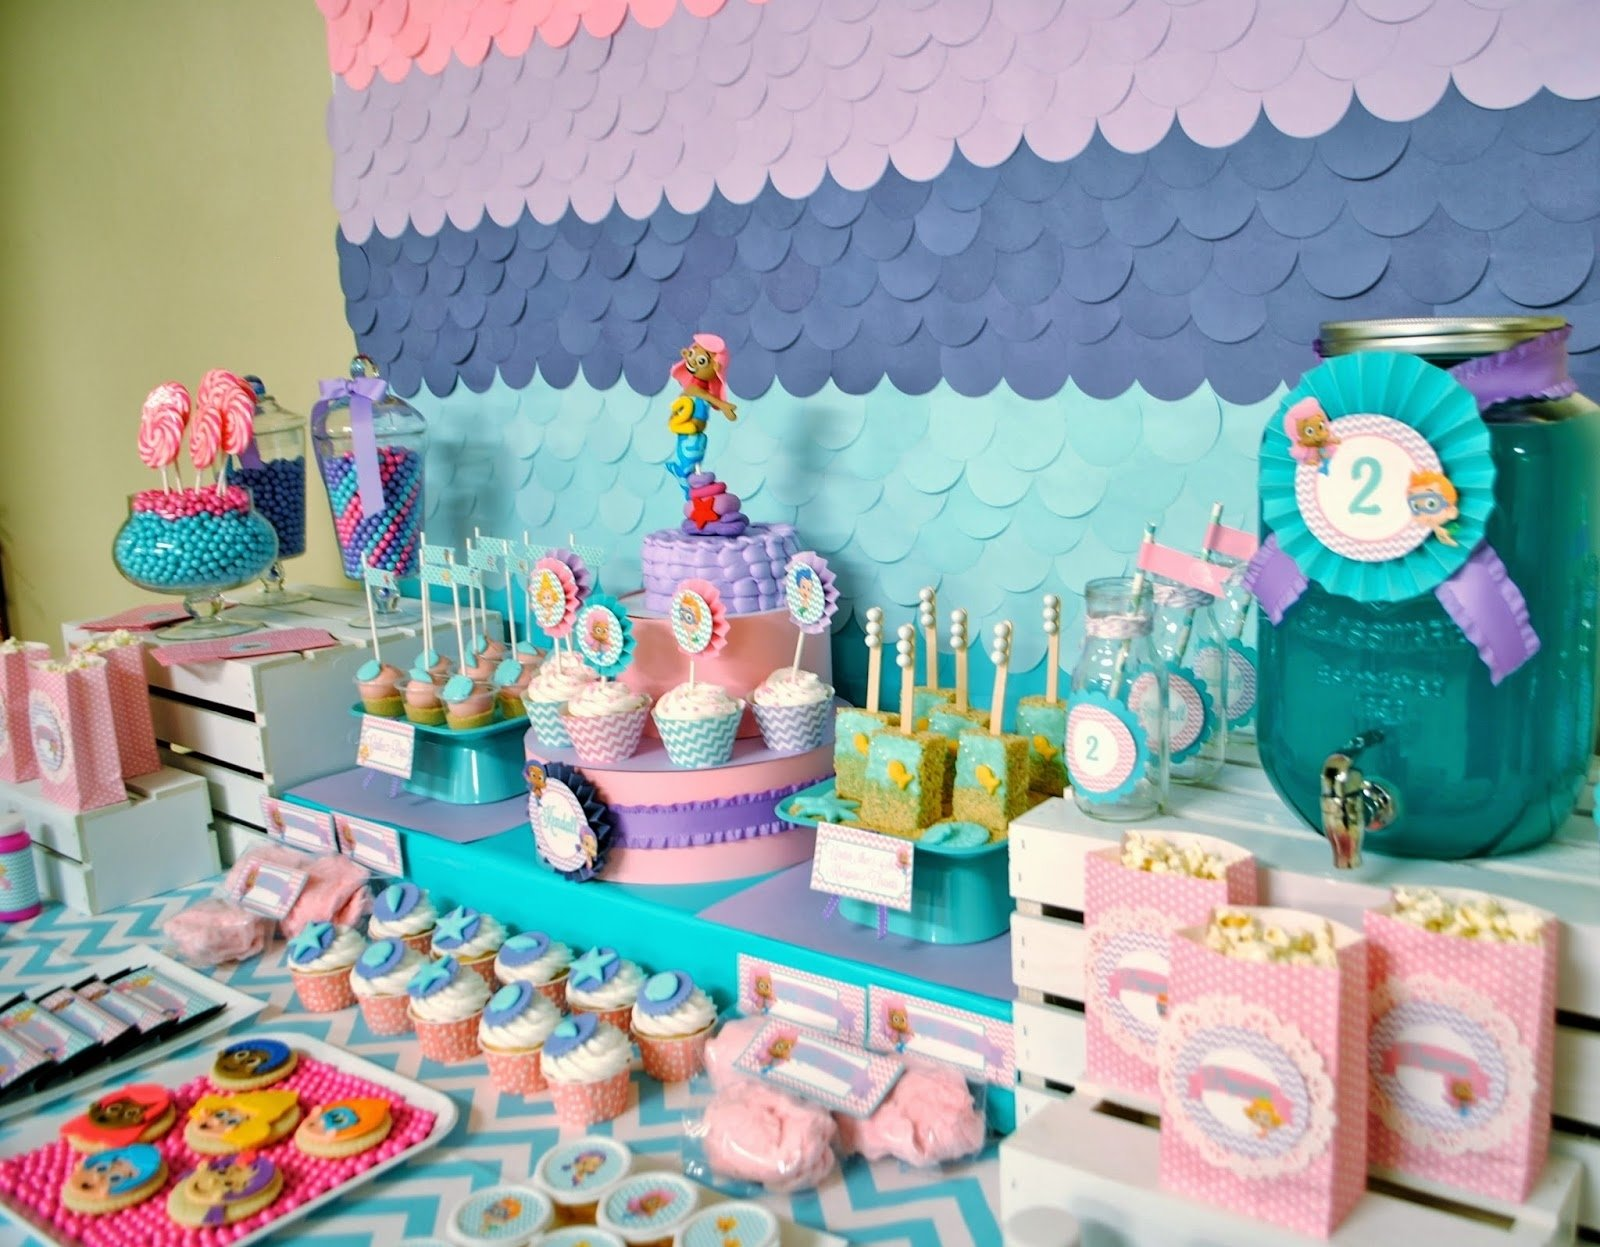 10 Wonderful Ideas For 2Nd Birthday Party bubble guppies birthday party ideas google search parties 3